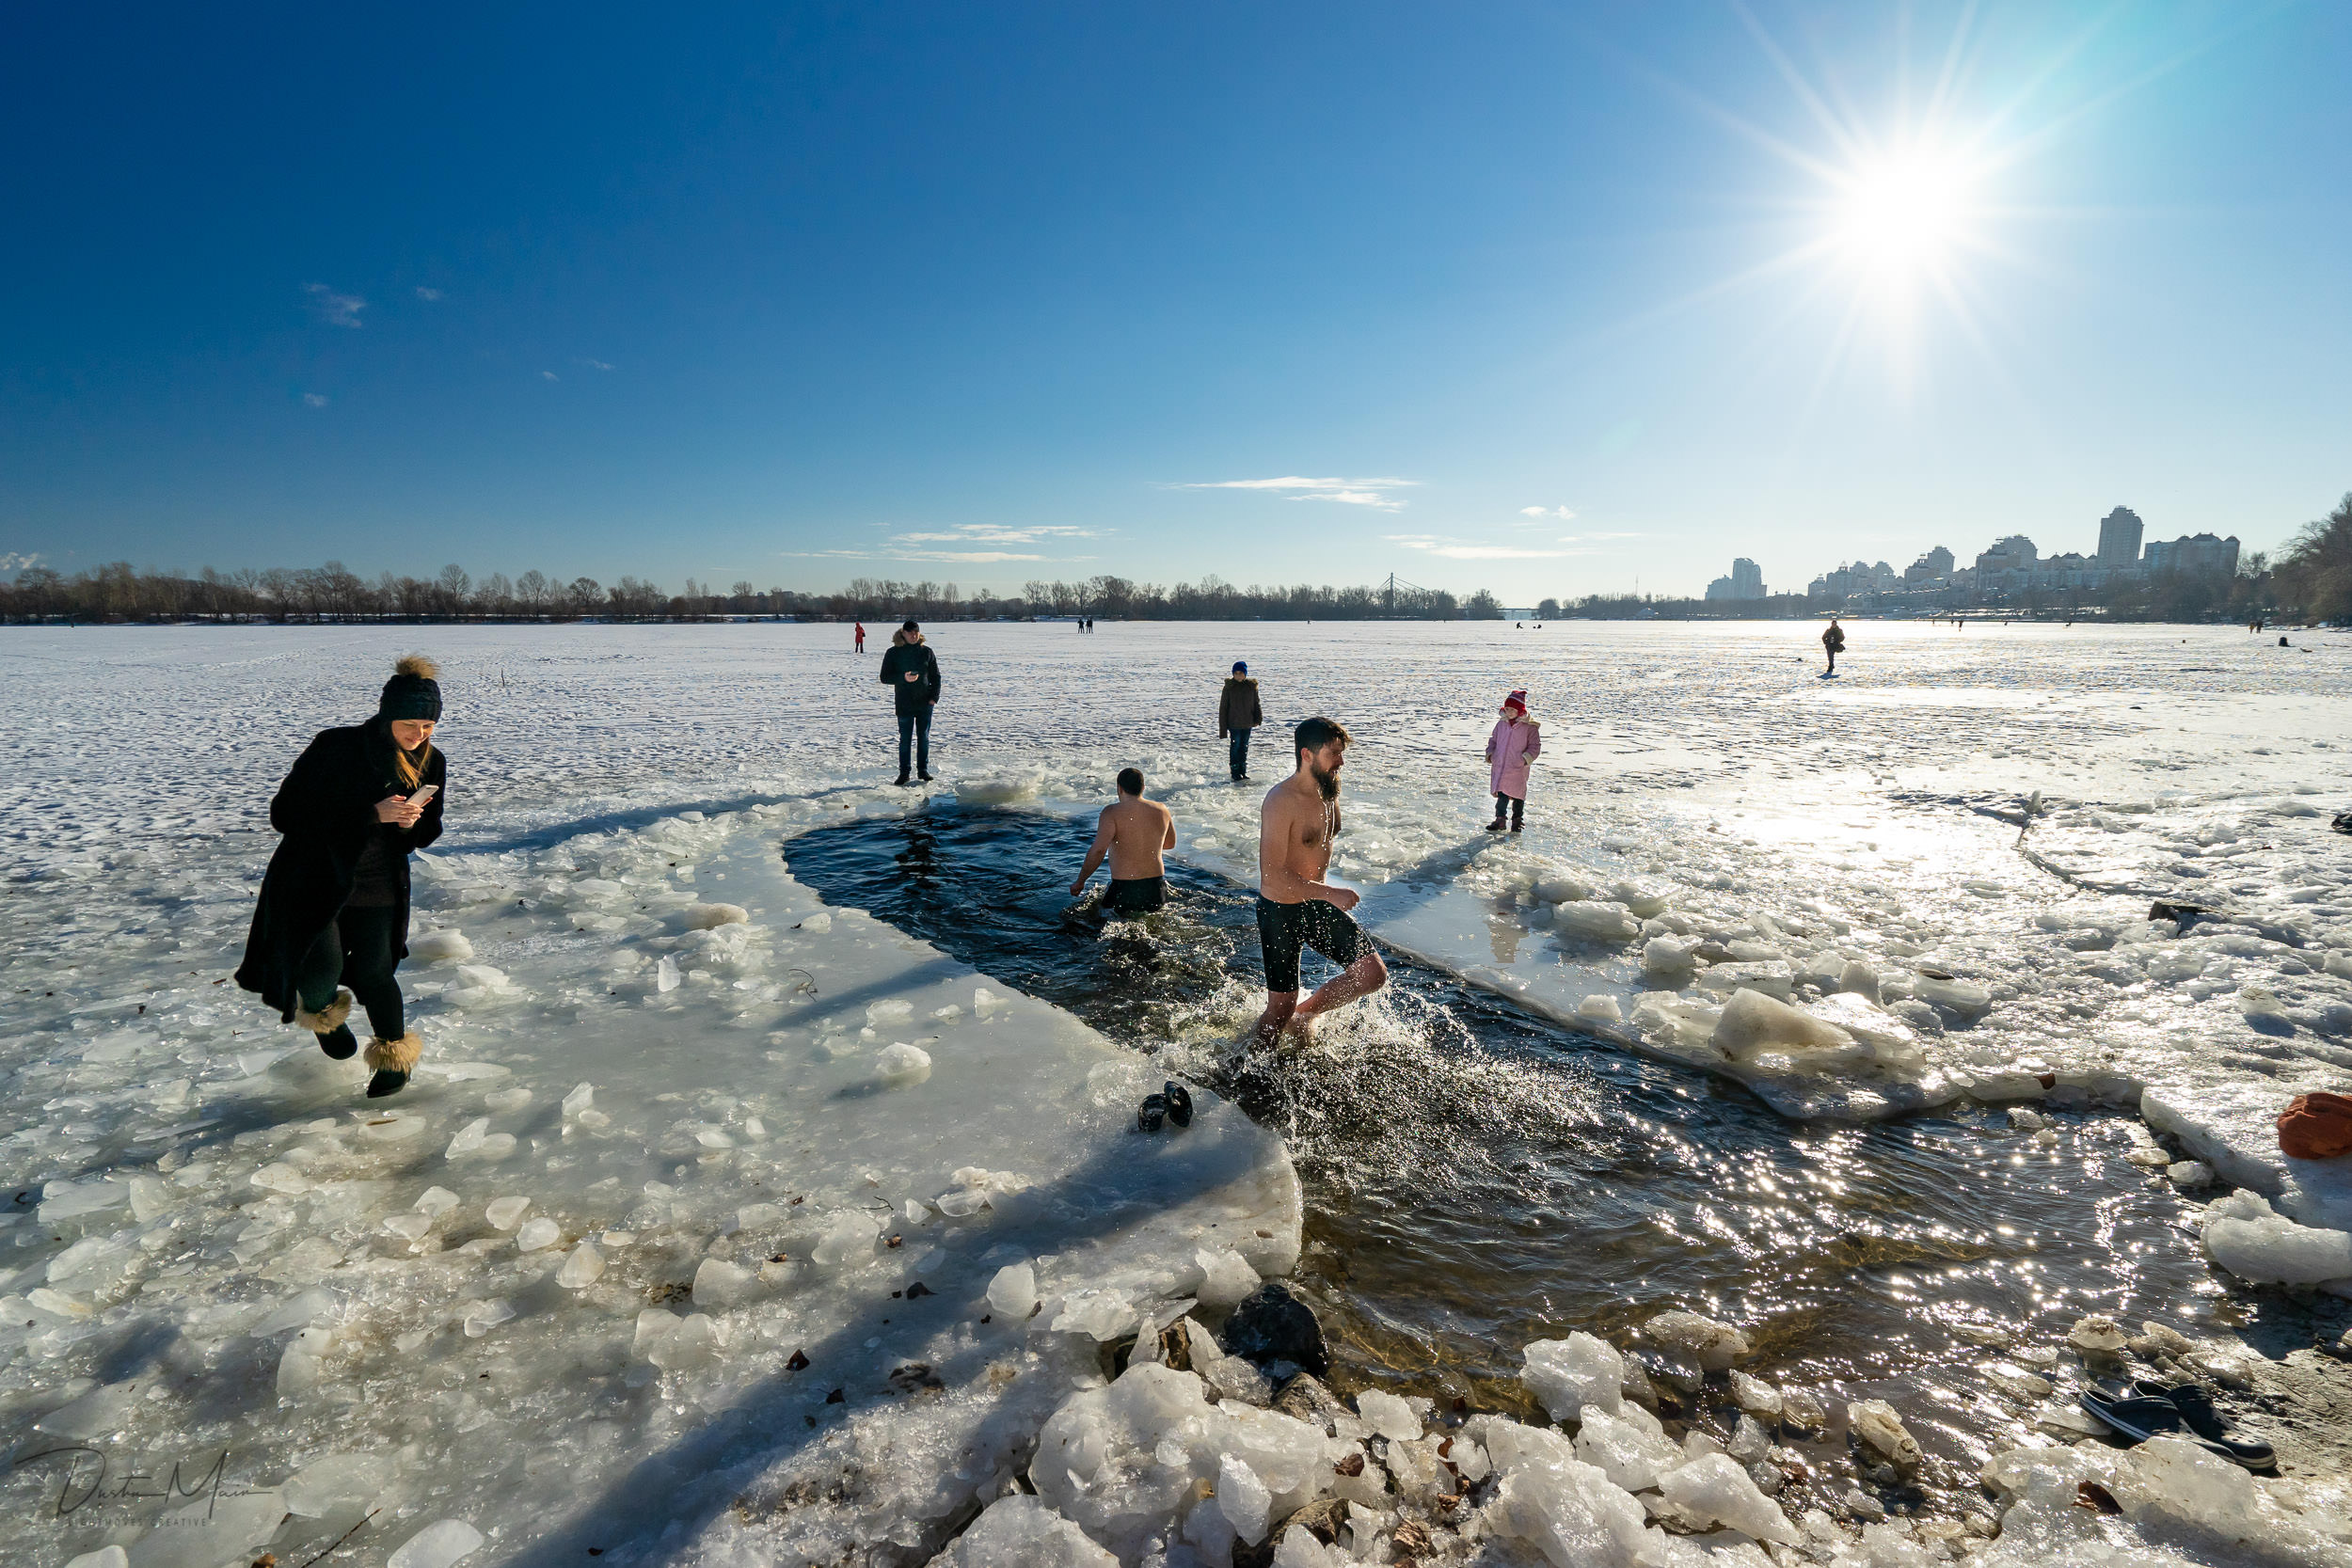 On and around the shore of the Dnieper river for Epiphany. © Dustin Main 2019